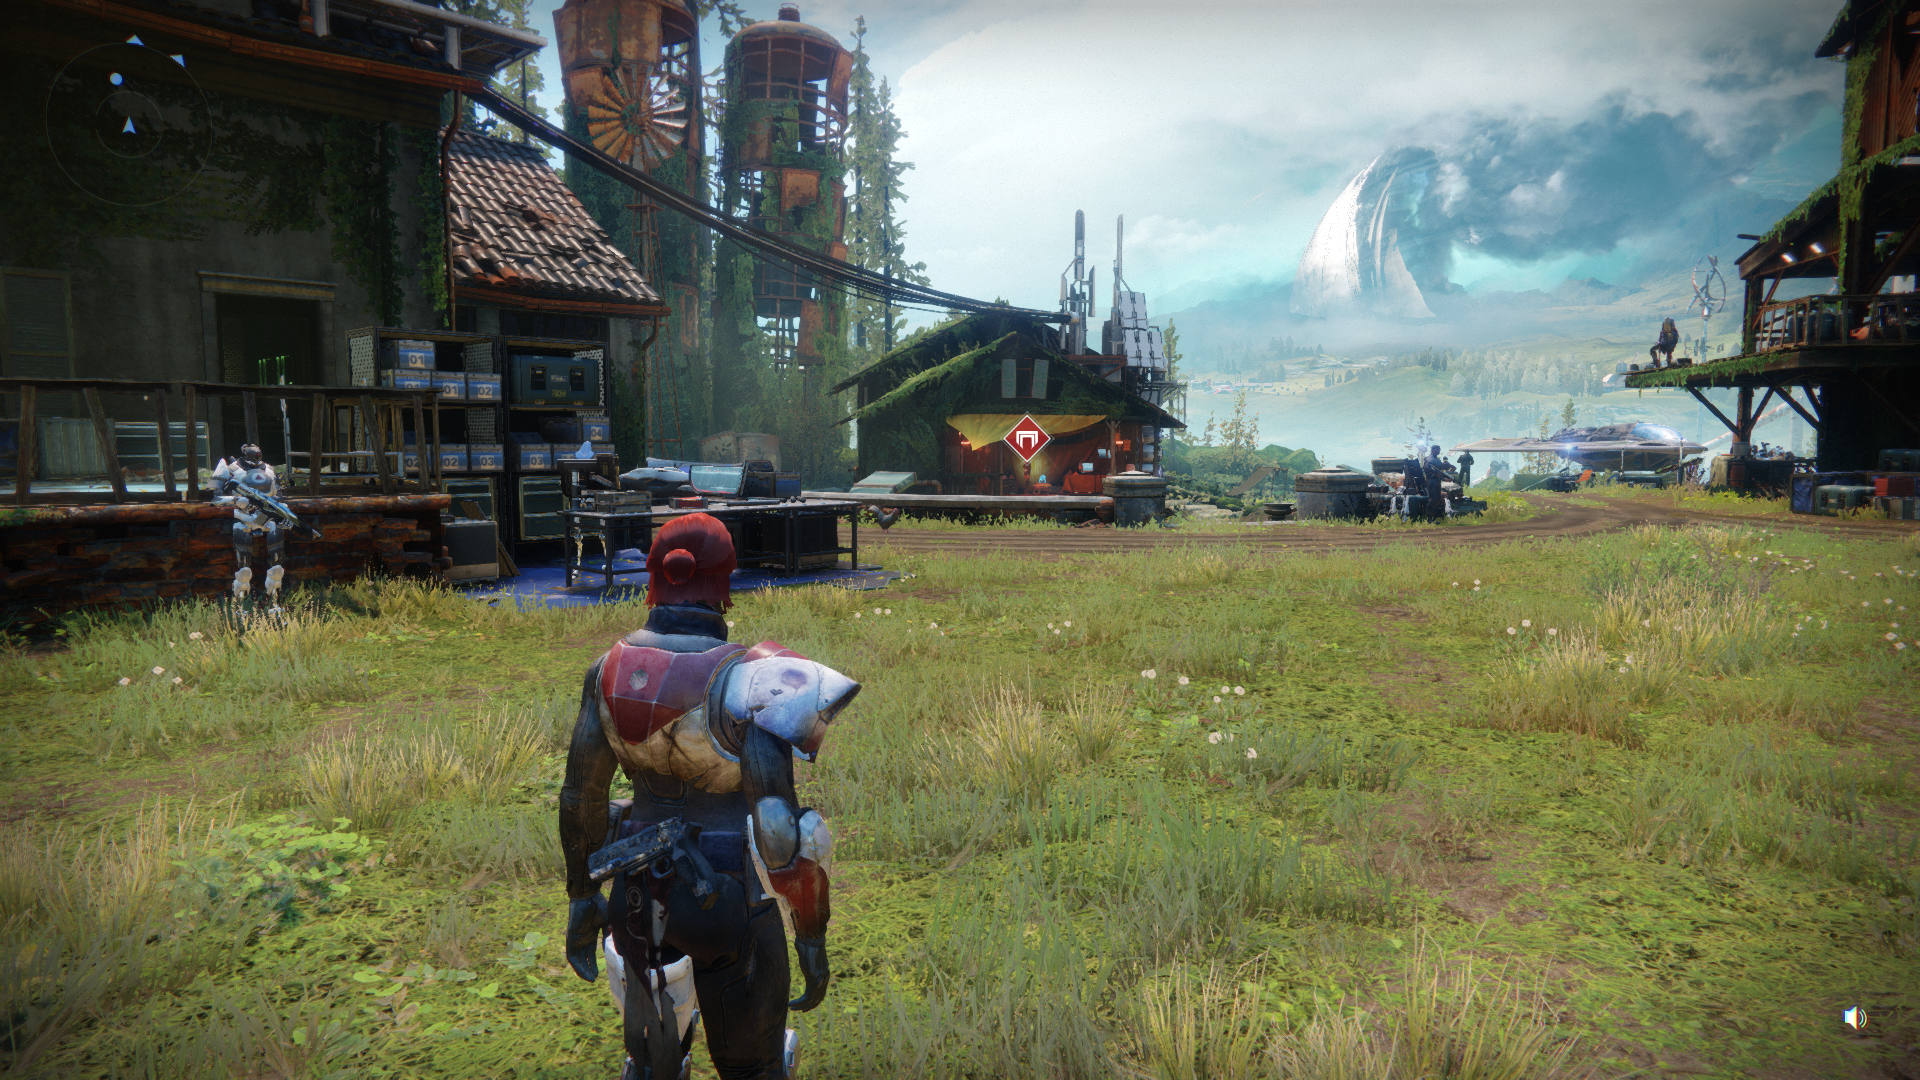 Destiny 2 Wide Shot of Farm